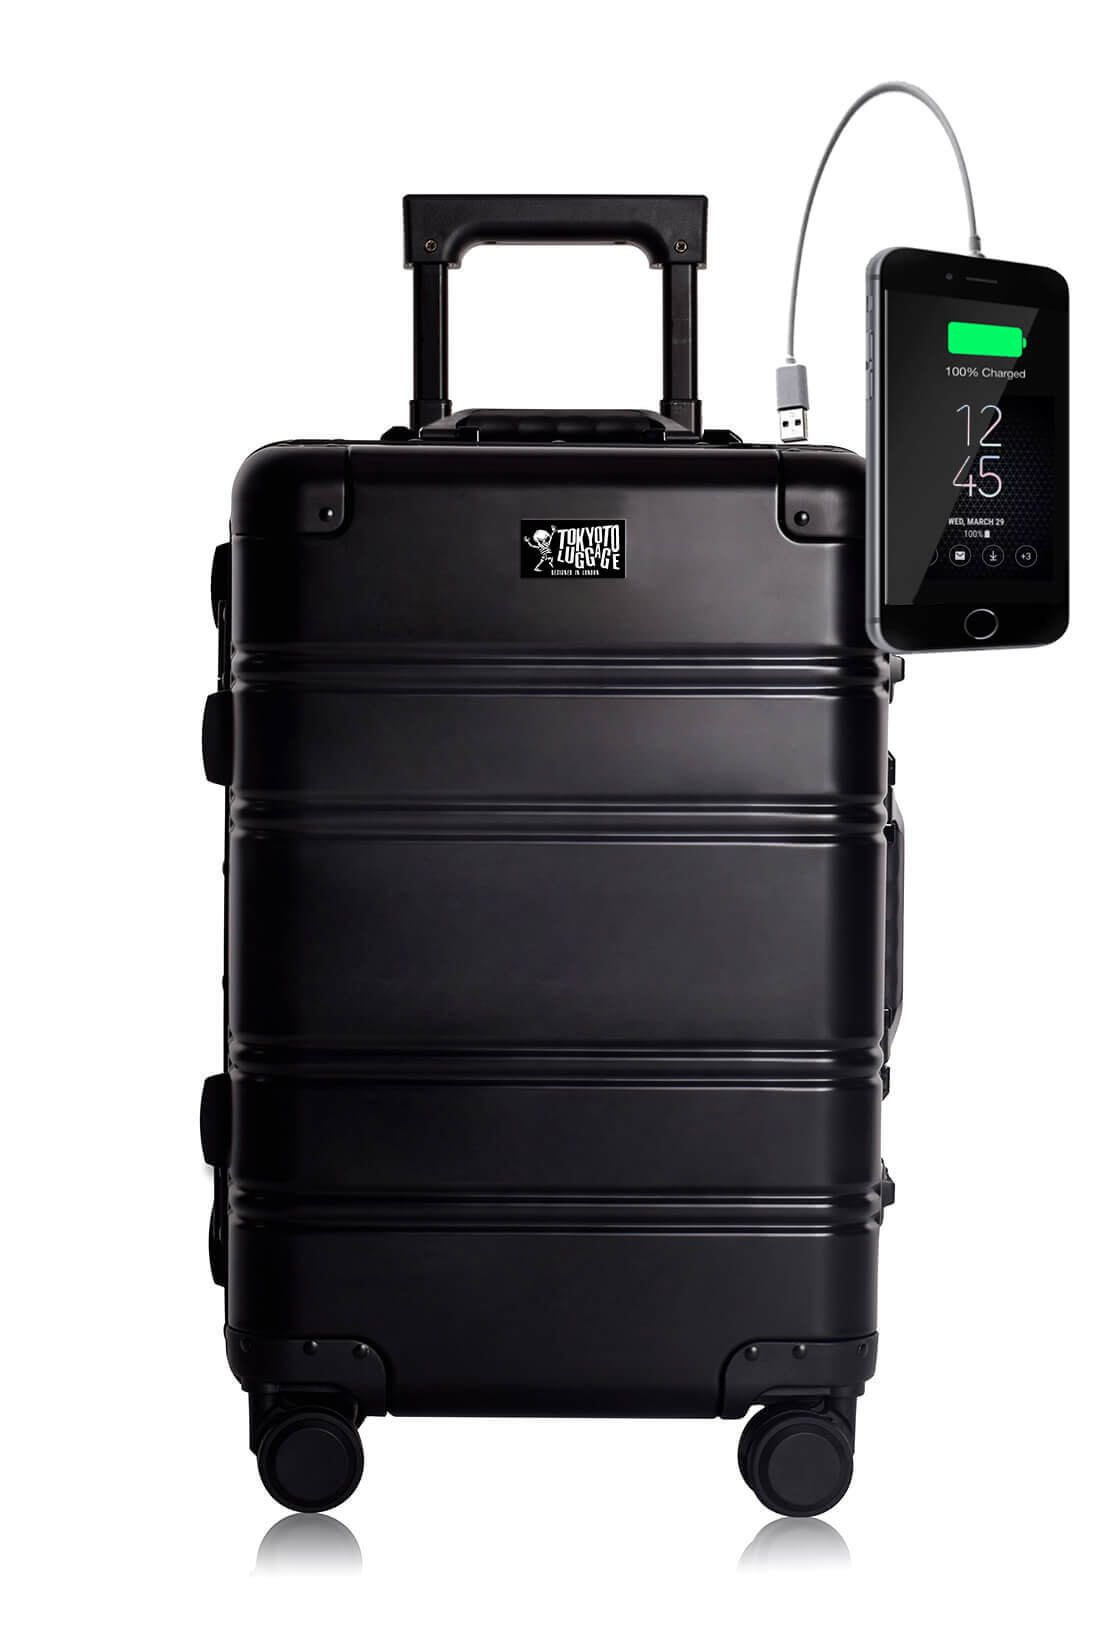 Aluminum Suitcase Trolley Cabin Luggage Black Logo Tokyoto 1